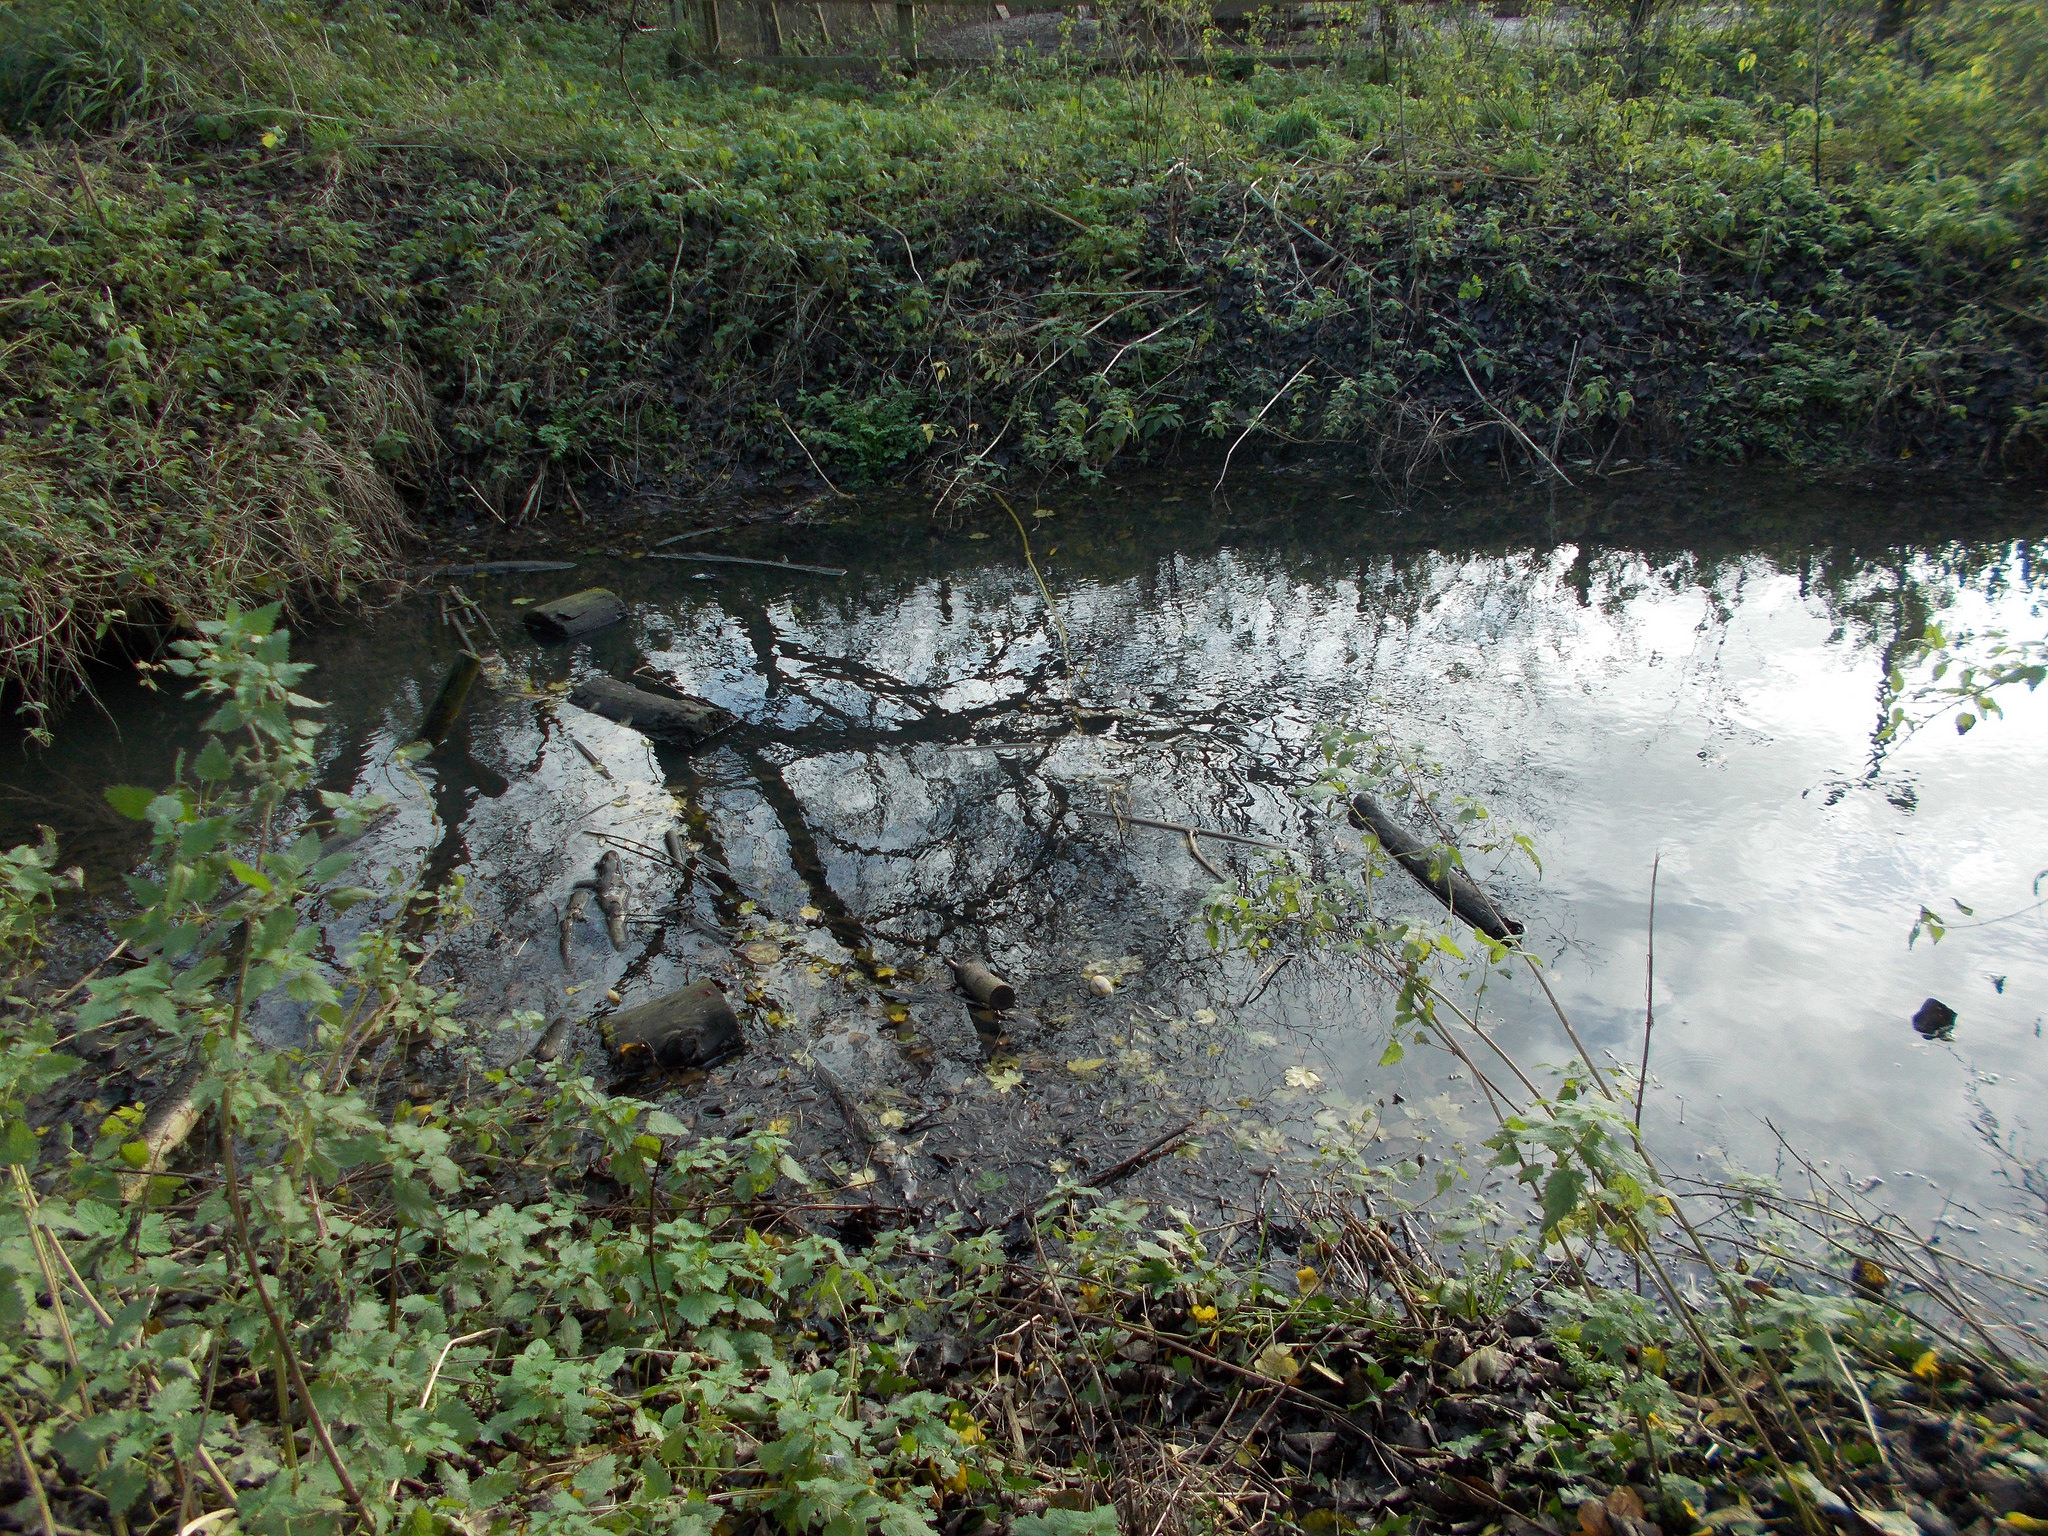 Rhine and ditch clearance in South Gloucestershire